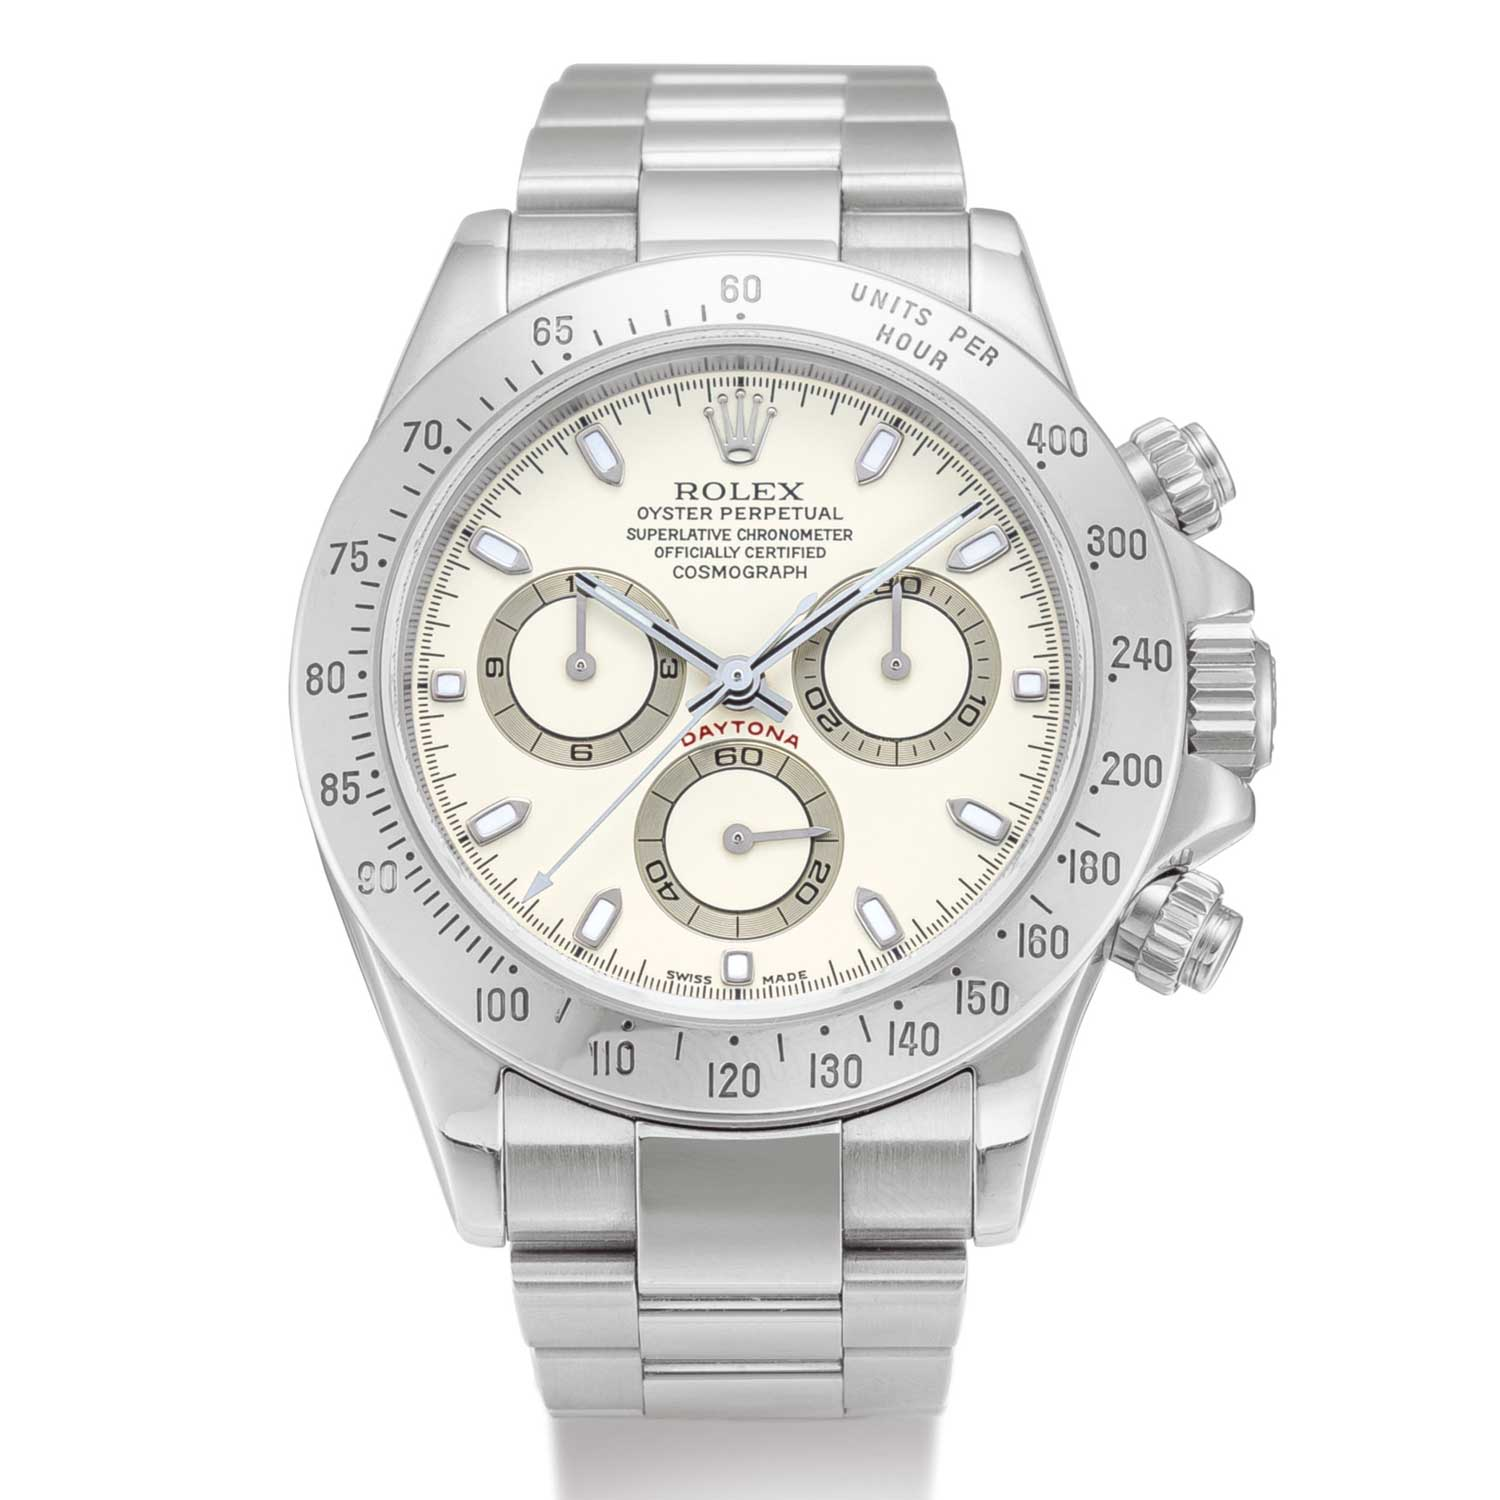 Rolex Cosmograph Daytona, Reference 116520 A Stainless Steel Chronograph Wristwatch With Cream Dial And Bracelet, Circa 2000